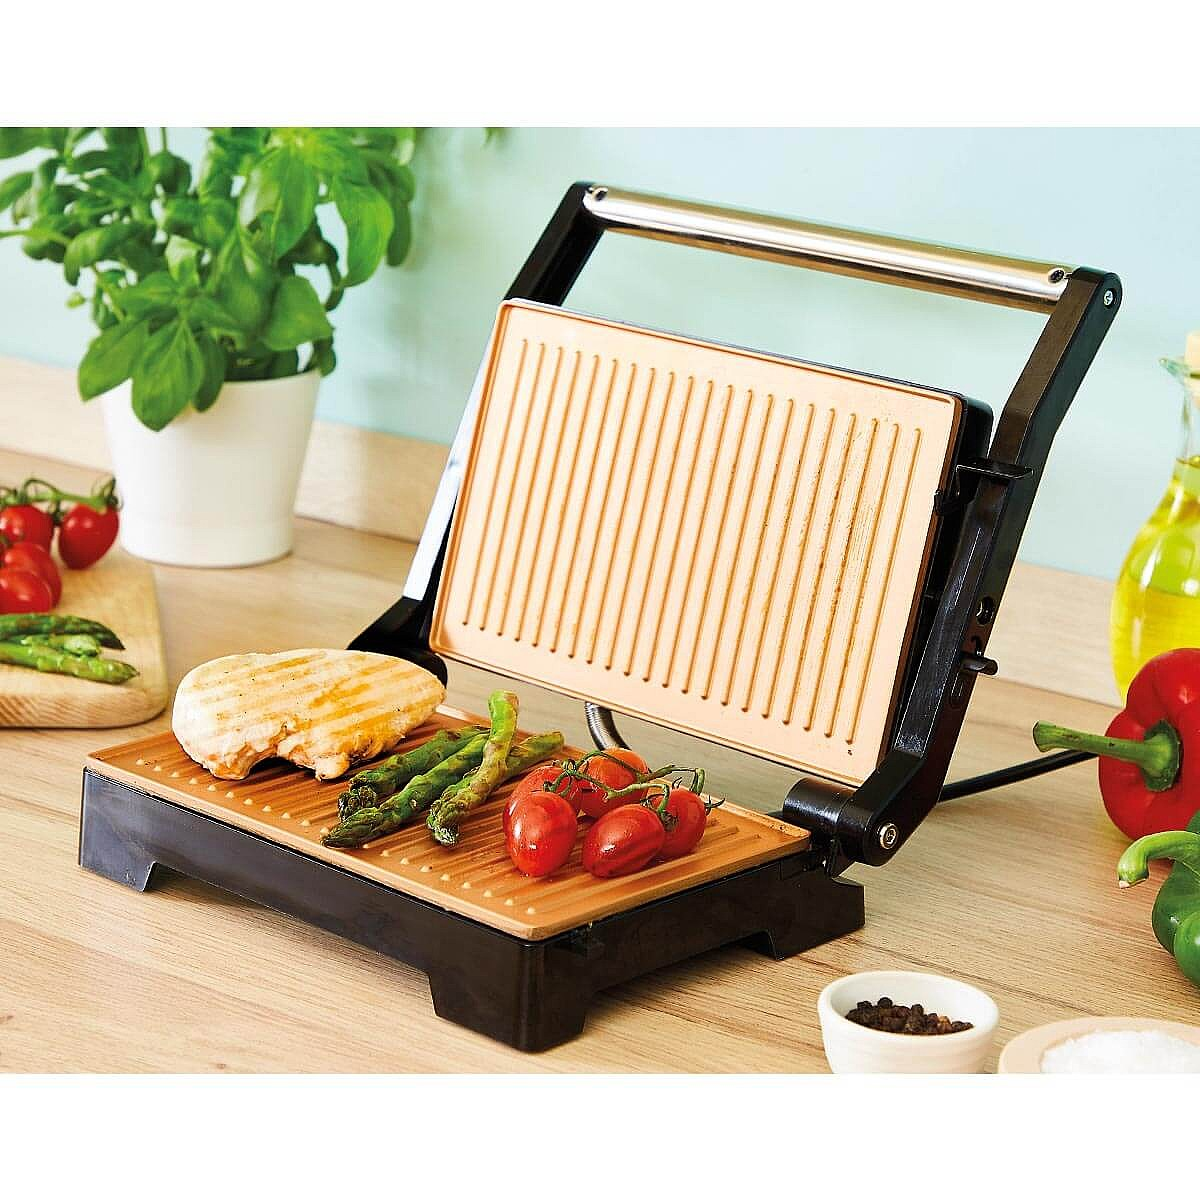 2-In-1 Health Grill